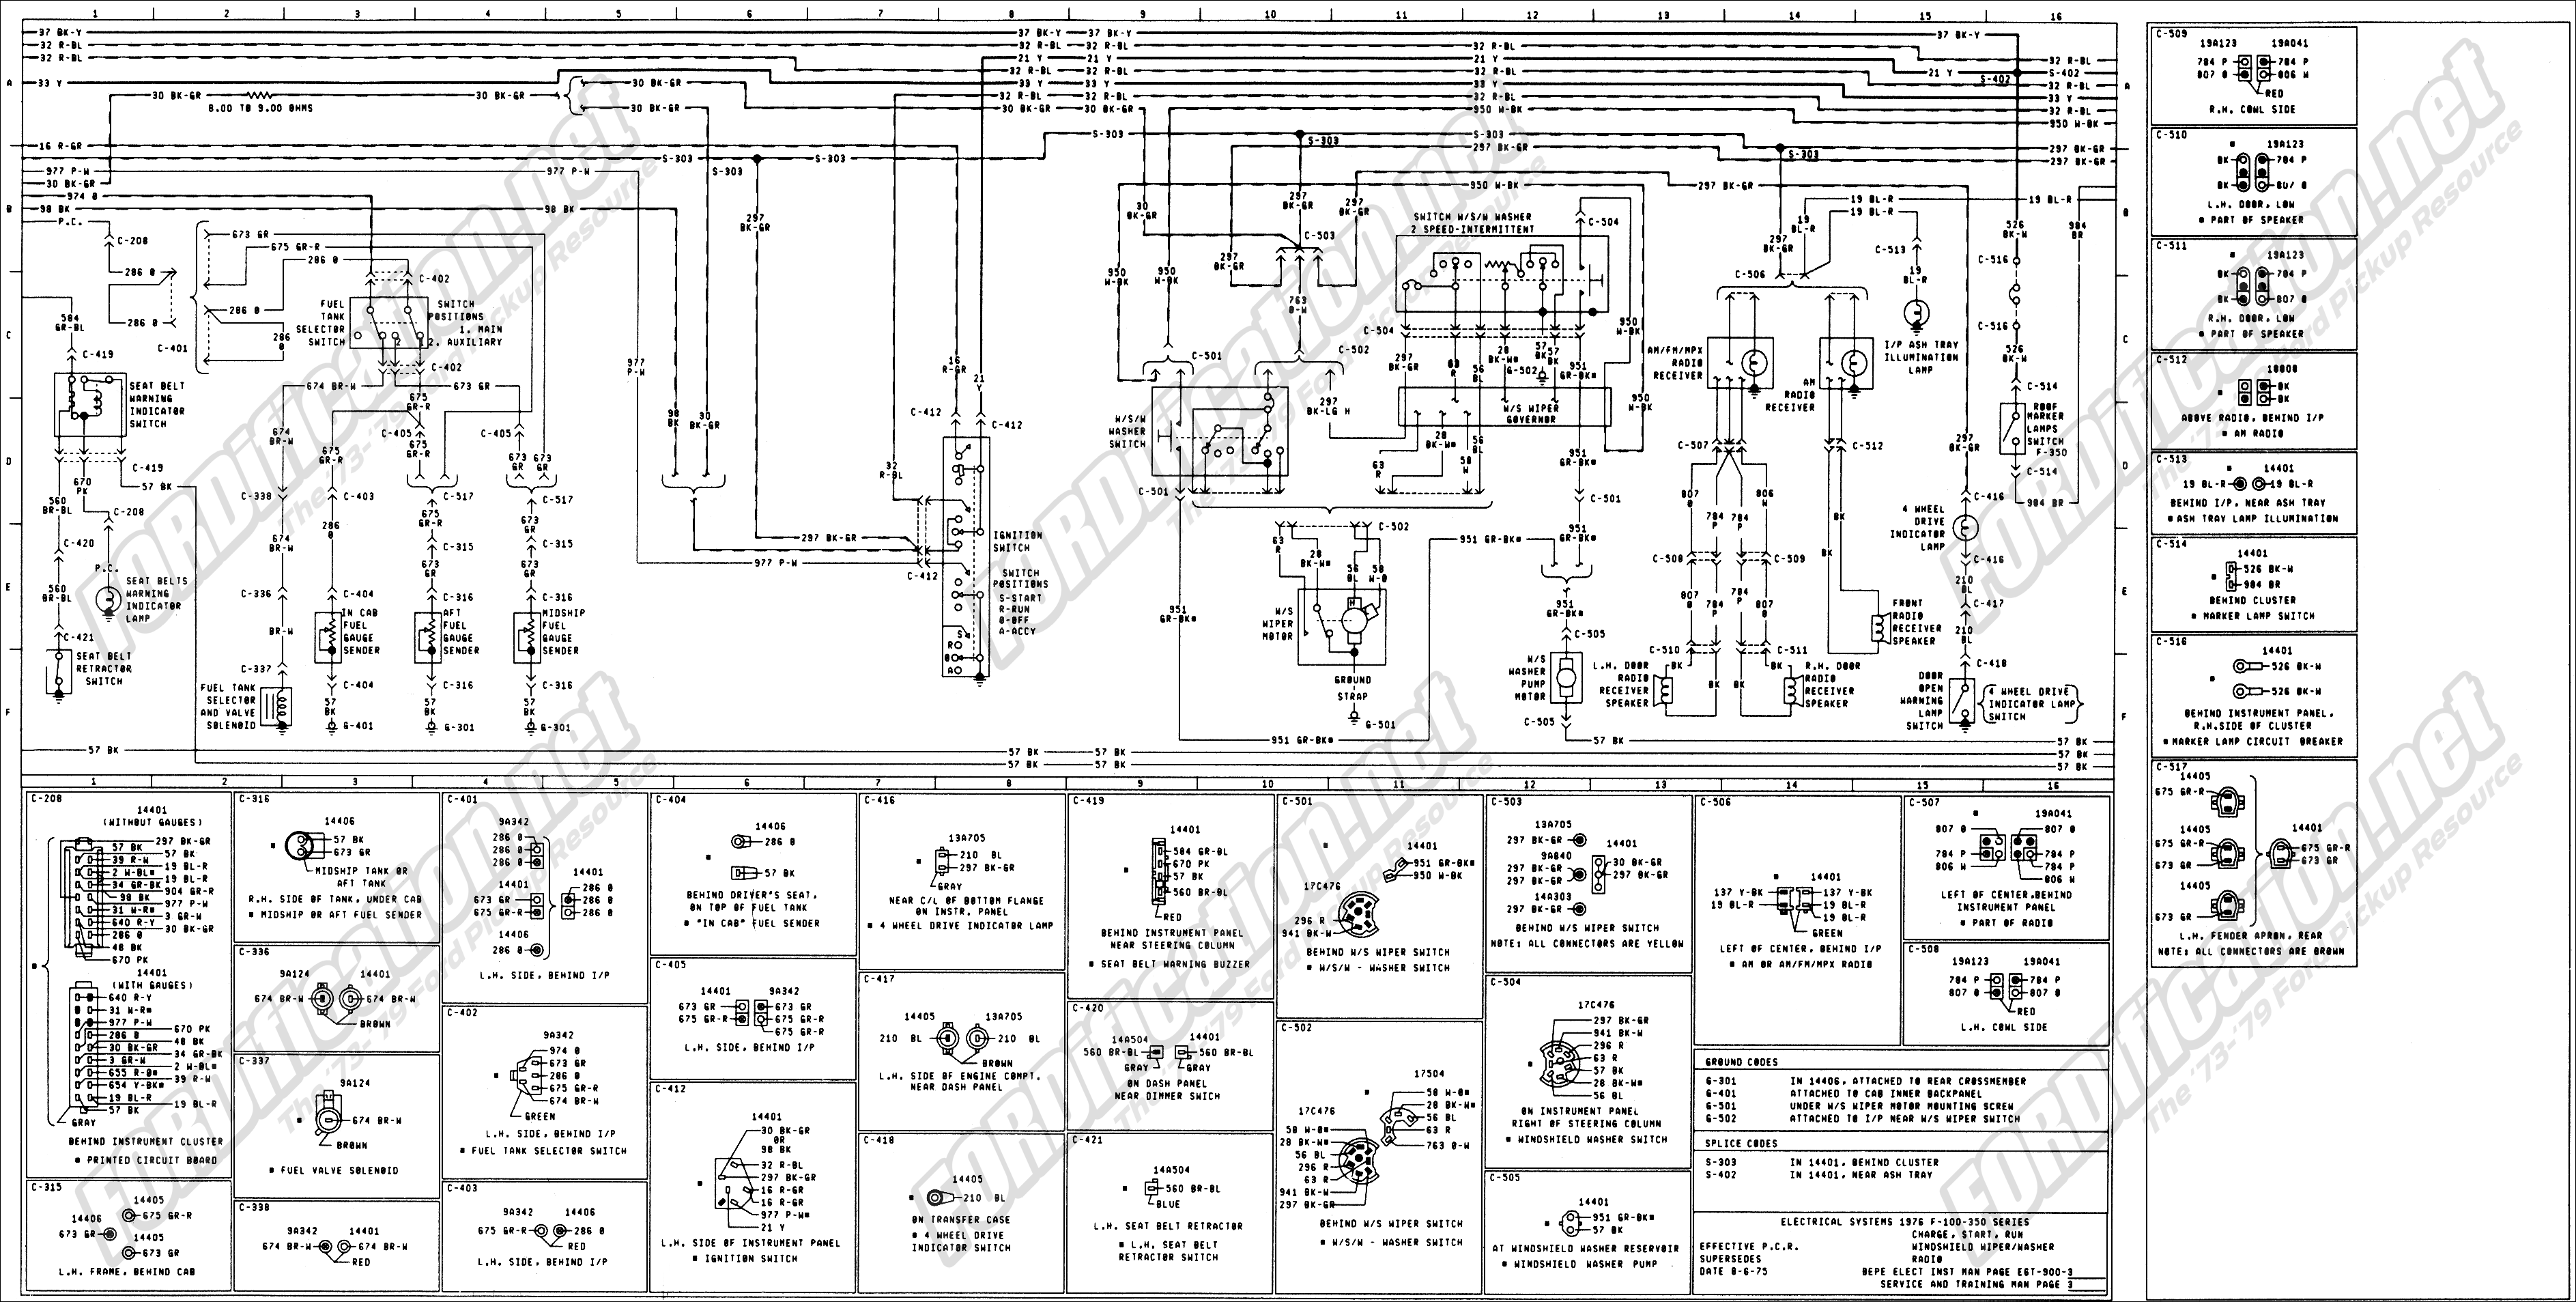 wiring_76master_3of9 1994 ford super duty wiring diagram wiring diagram simonand ford wiring schematics at fashall.co